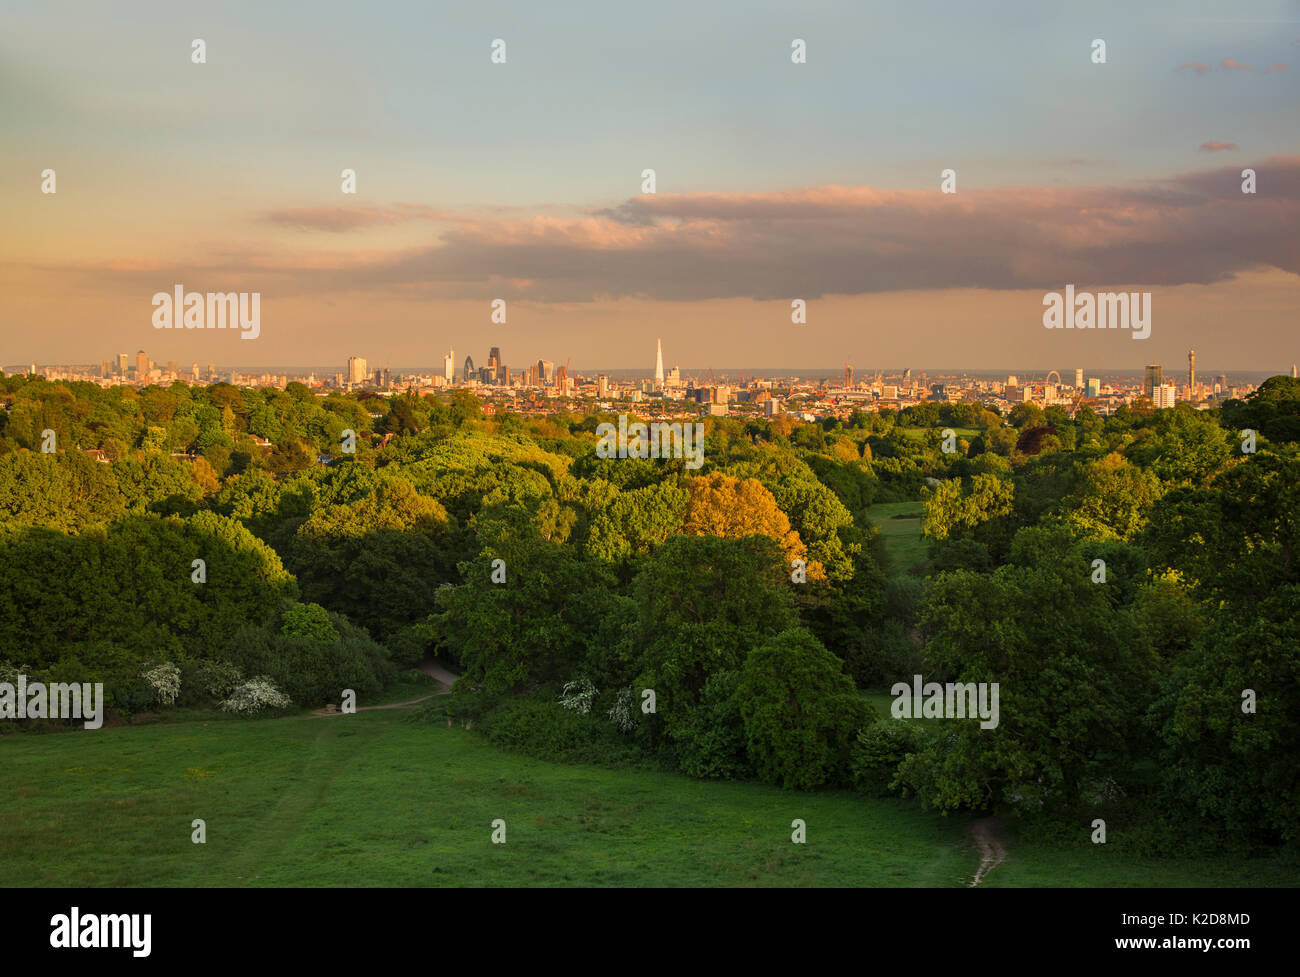 View of the City of London taken from a (MEWP) Mobile Elevated Working Platform, Hampstead Heath, London, England, UK, May 2015. - Stock Image